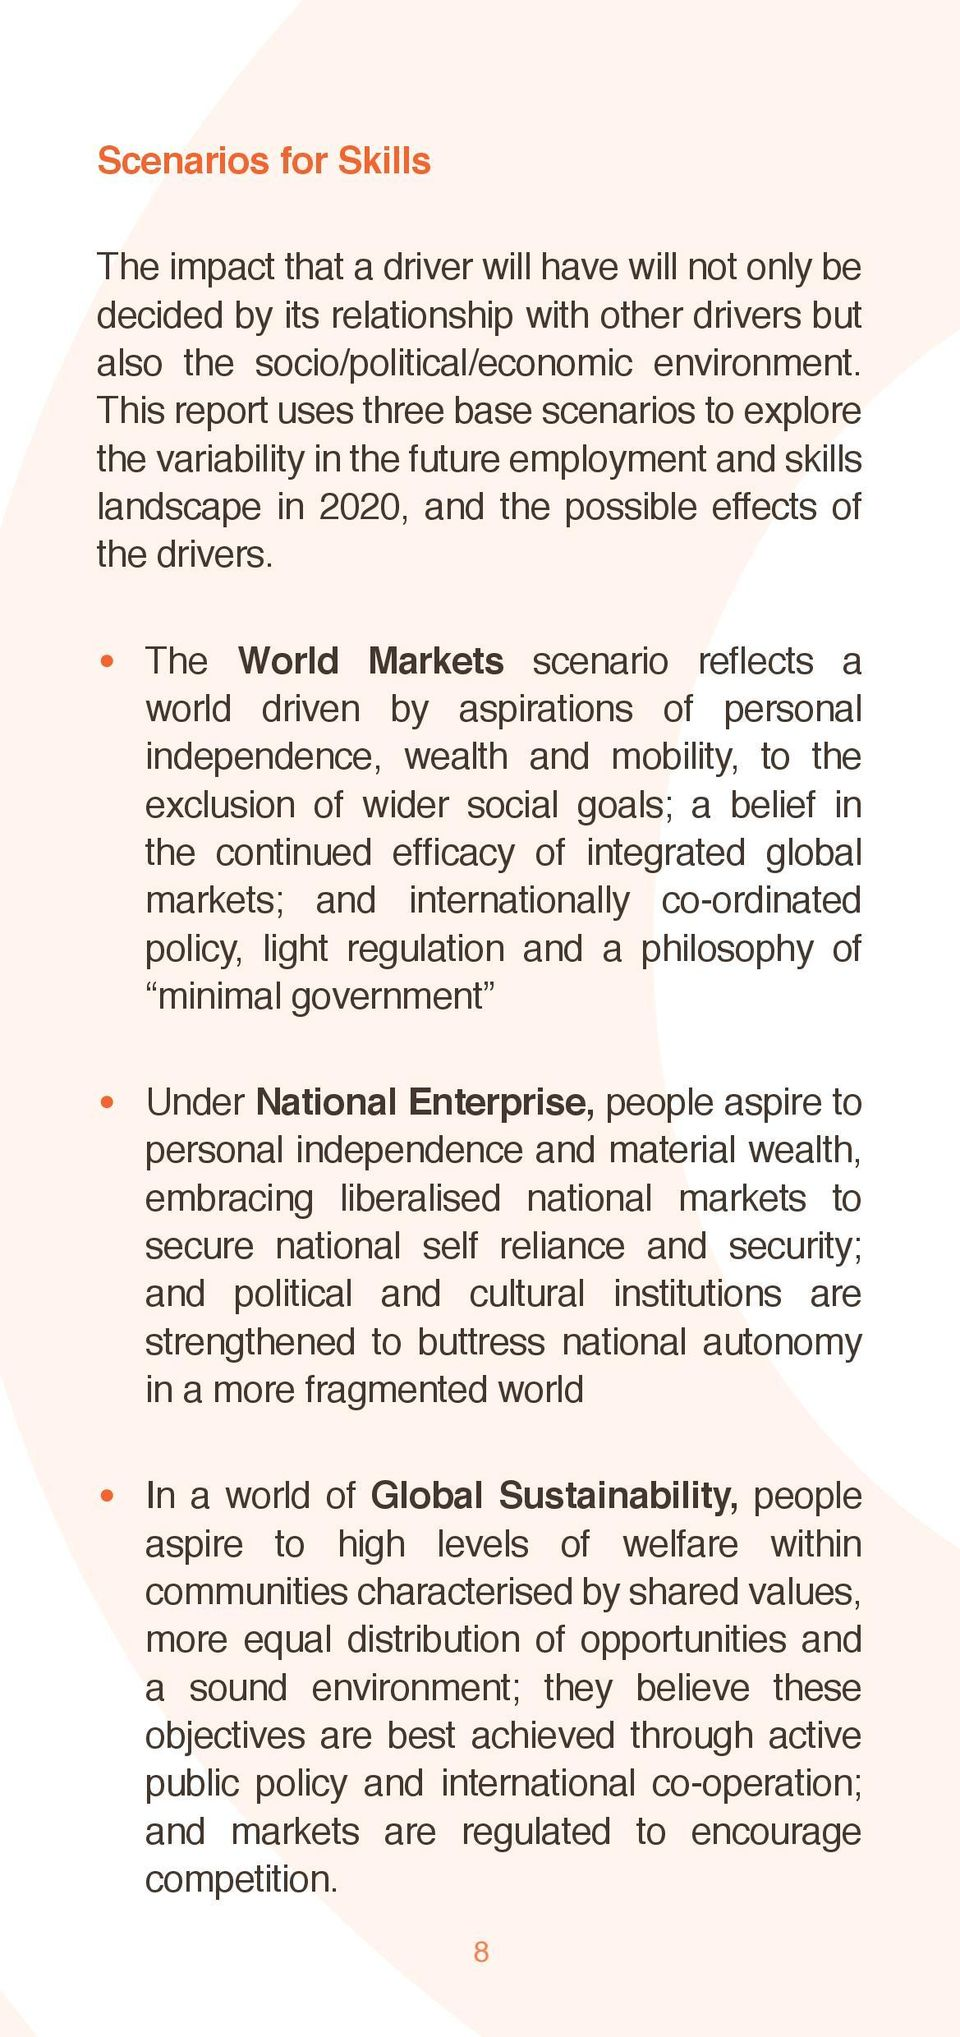 The World Markets scenario reflects a world driven by aspirations of personal independence, wealth and mobility, to the exclusion of wider social goals; a belief in the continued efficacy of